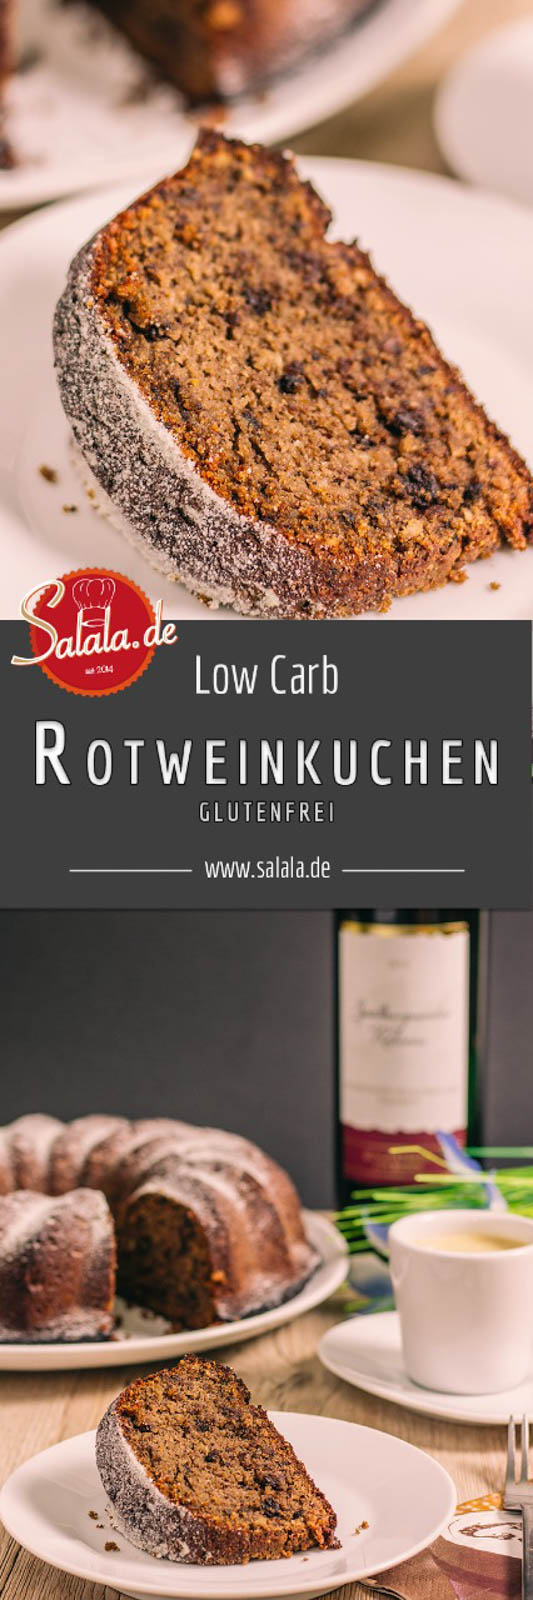 rotweinkuchen ohne mehl low carb low carb mit vroni nico. Black Bedroom Furniture Sets. Home Design Ideas